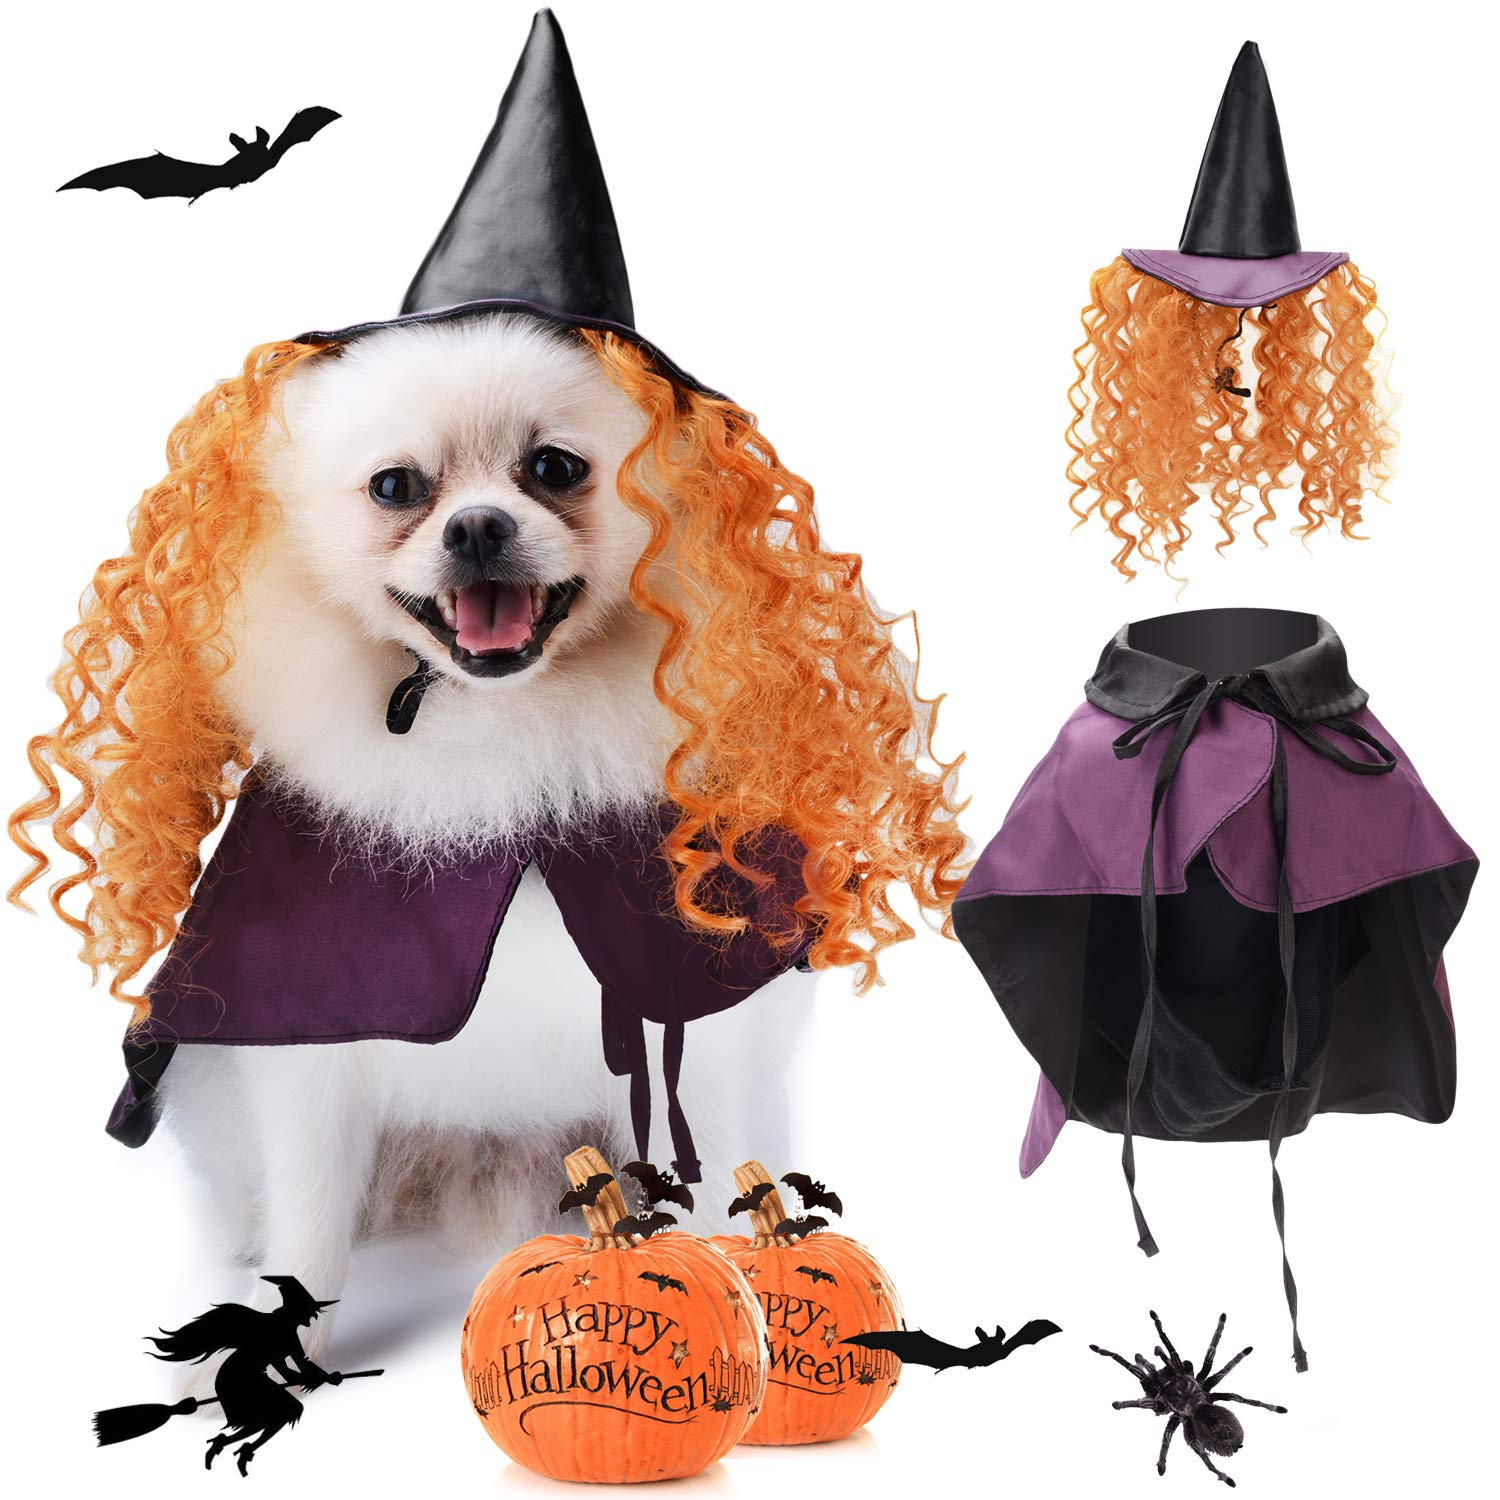 Legendog Halloween Costumes for Dogs, Dog Halloween Costumes, Funny Cat Dog Cape, Dog Wizard Cape and Dog Hat With Wig Pet Costume Set